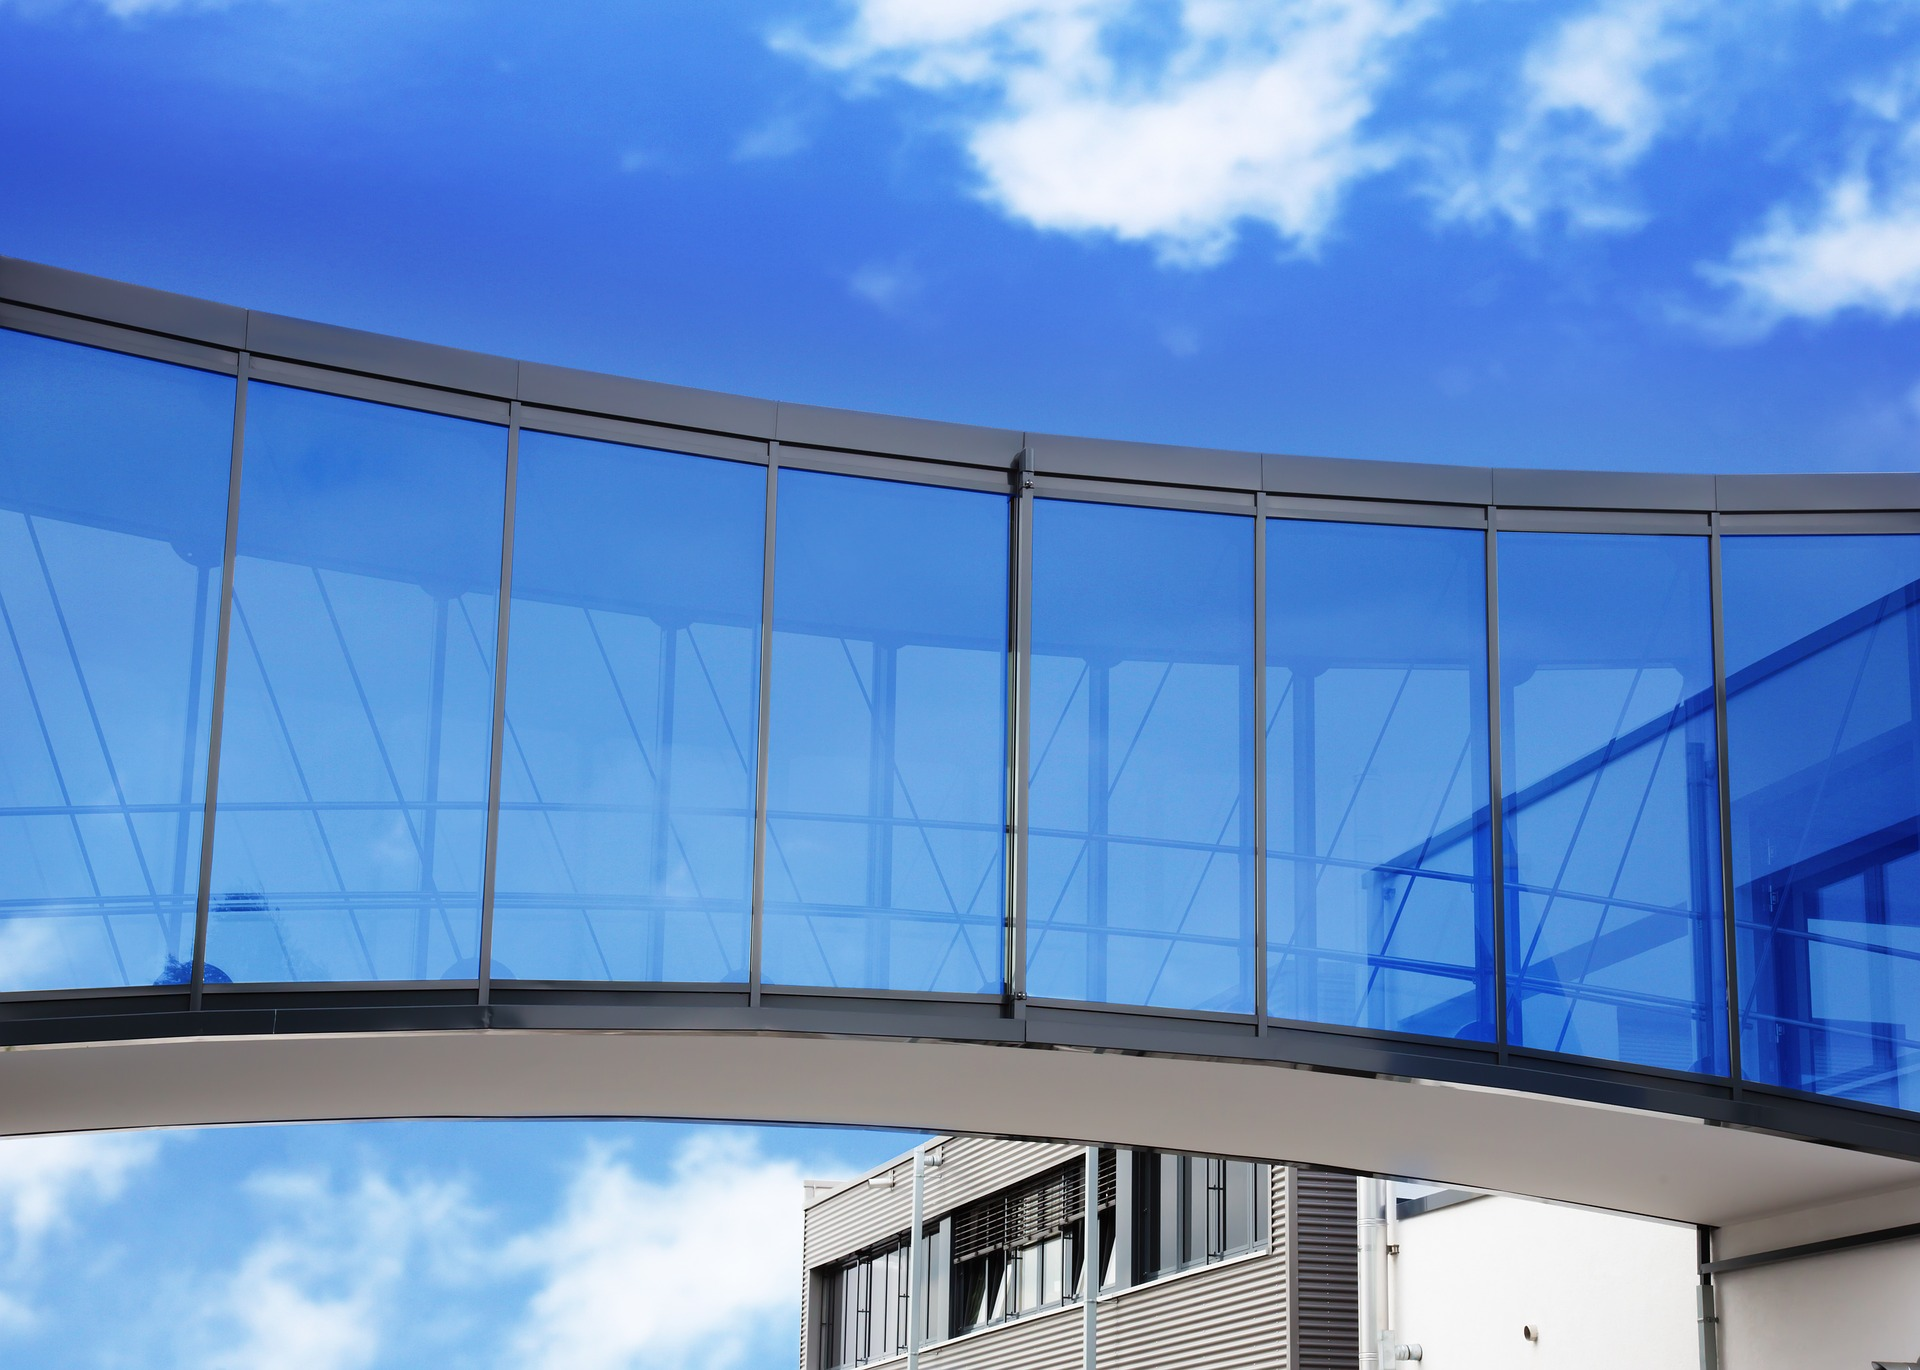 Pedestrian bridge with glass walls between two buildings against a clear blue sky.